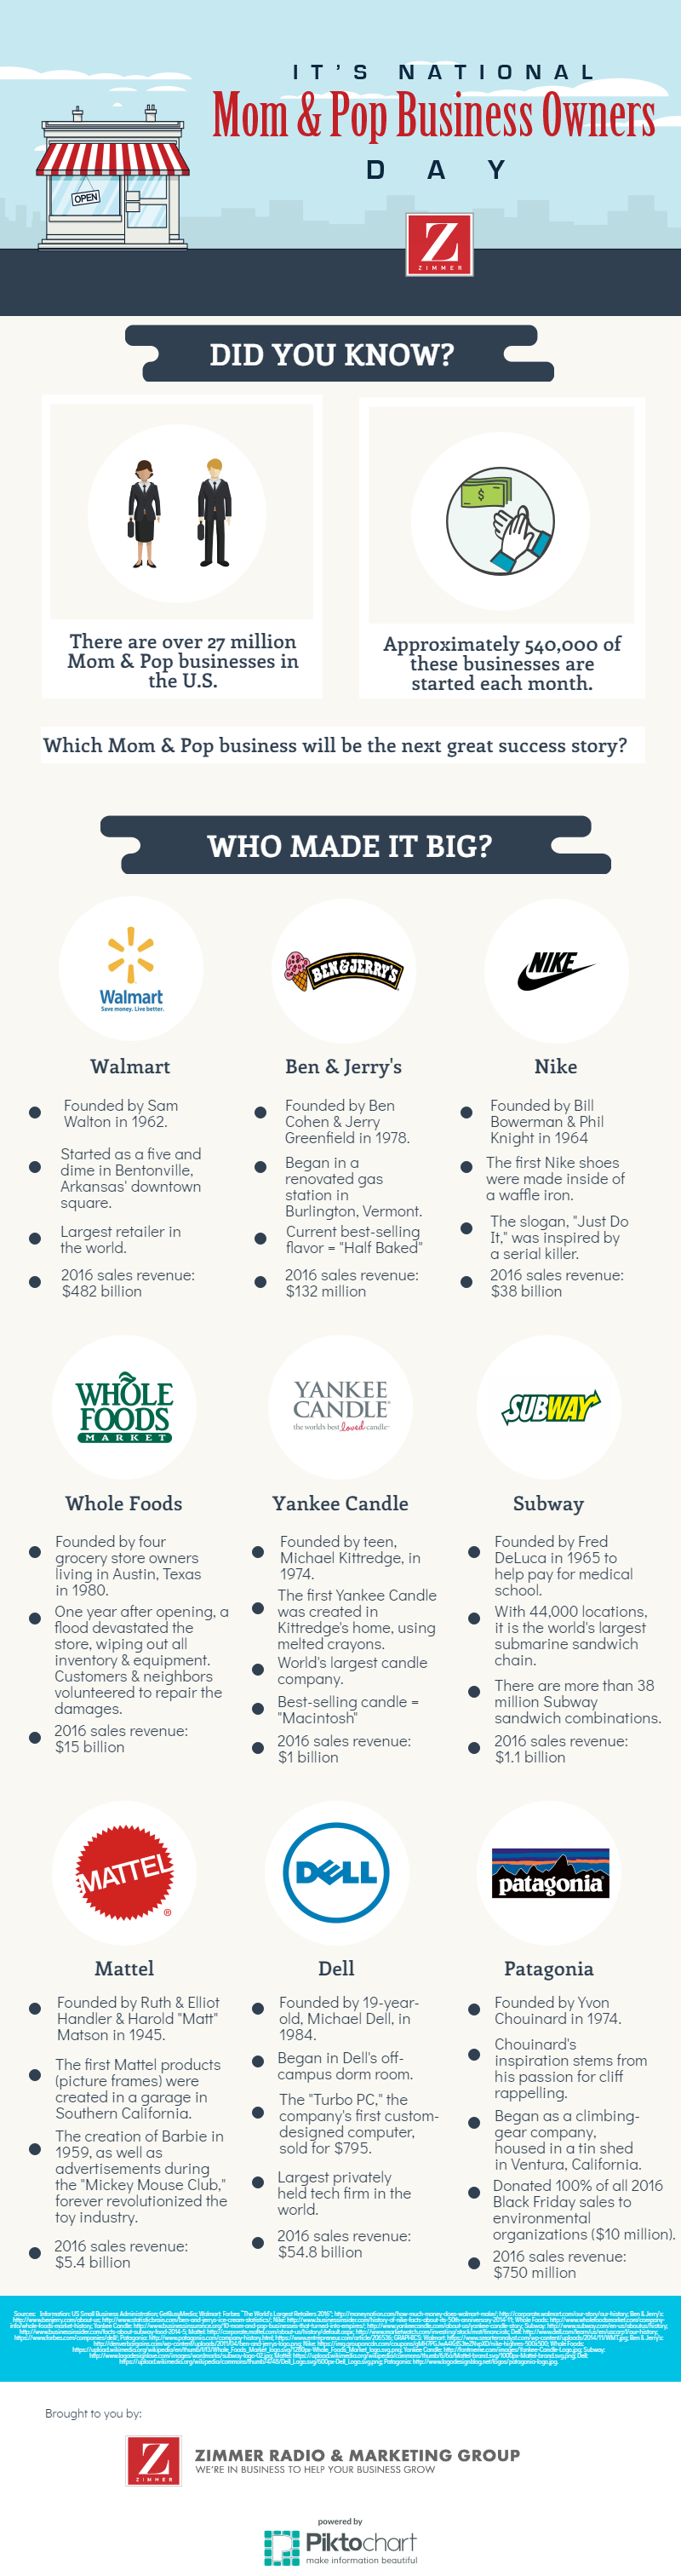 Mom-and-Pop-Busines-Owners-INFOGRAPHIC.png